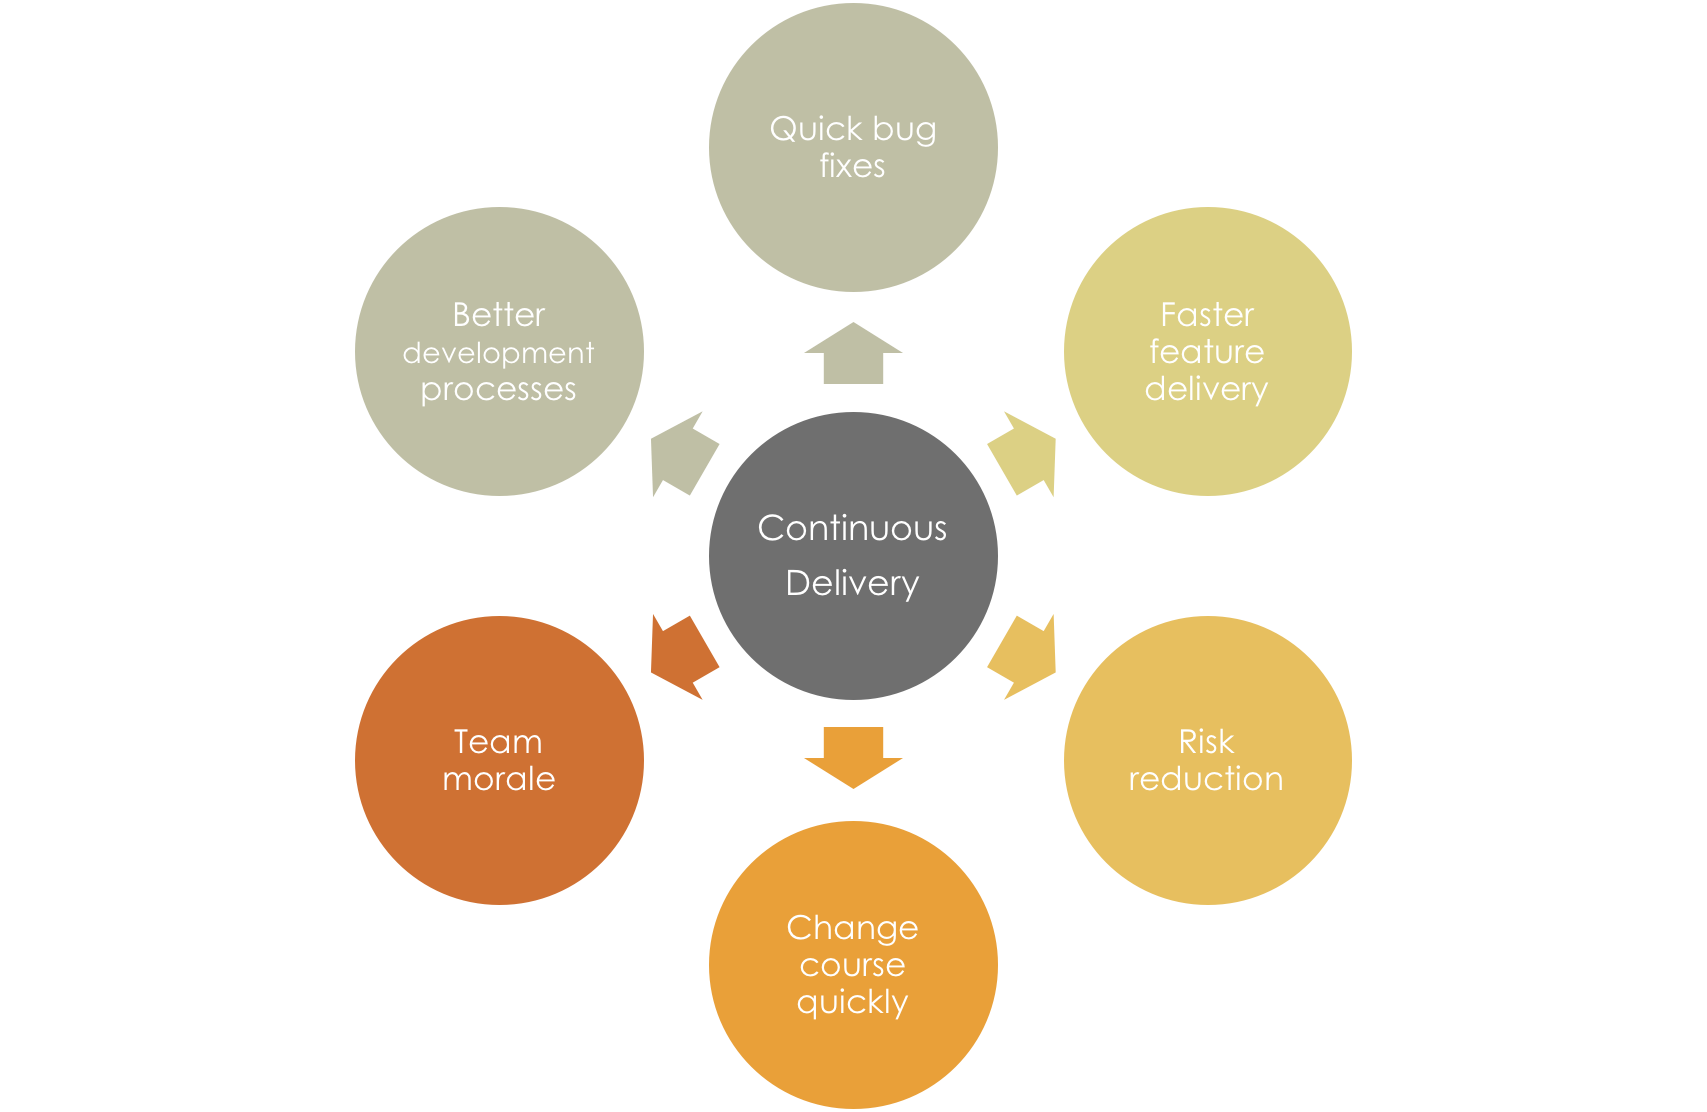 What are the benefits of continuous delivery?